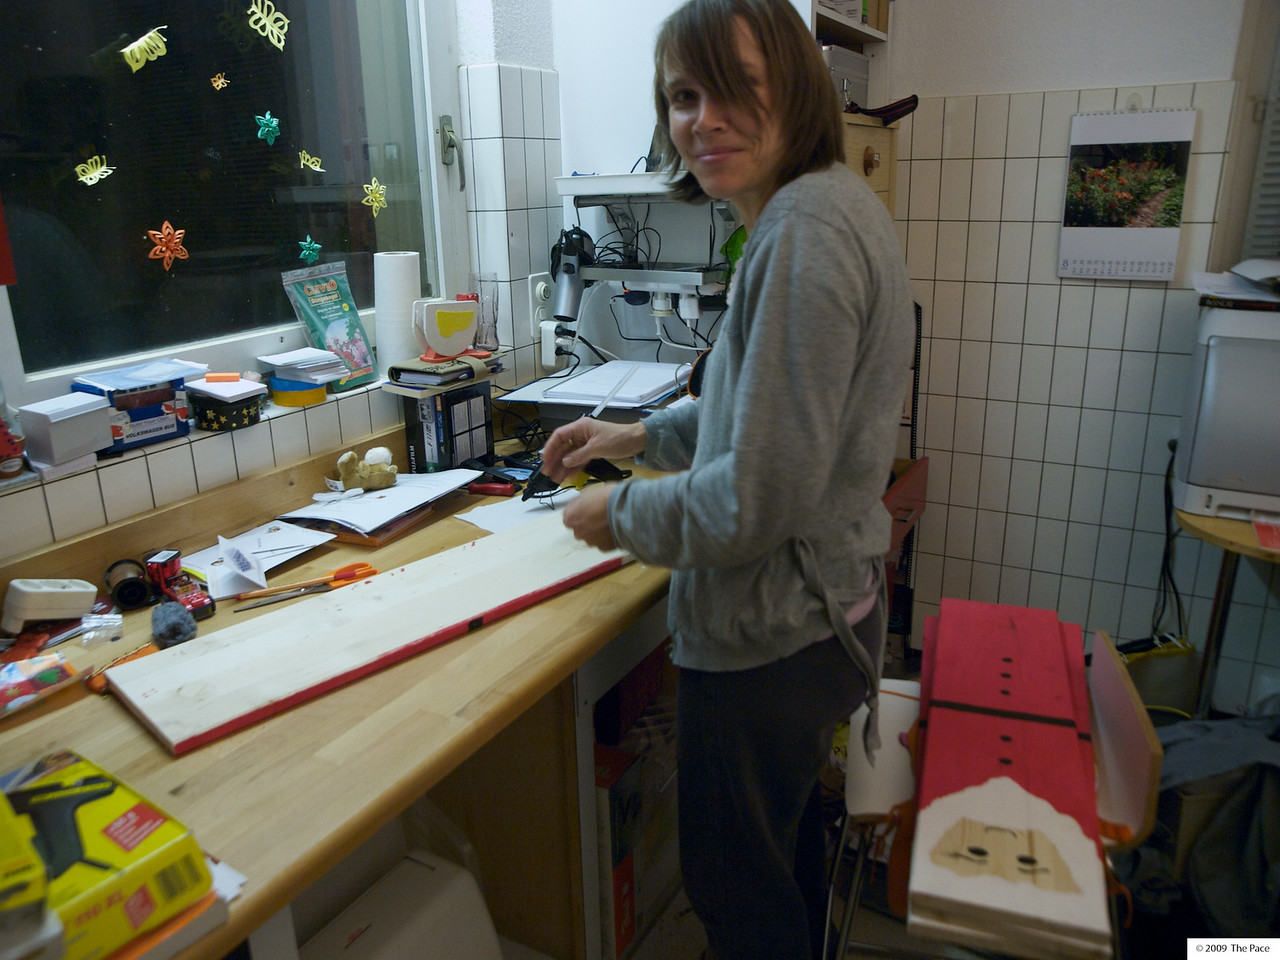 Tuesday 8th December 2009 - Kerstin works on her advent calanders